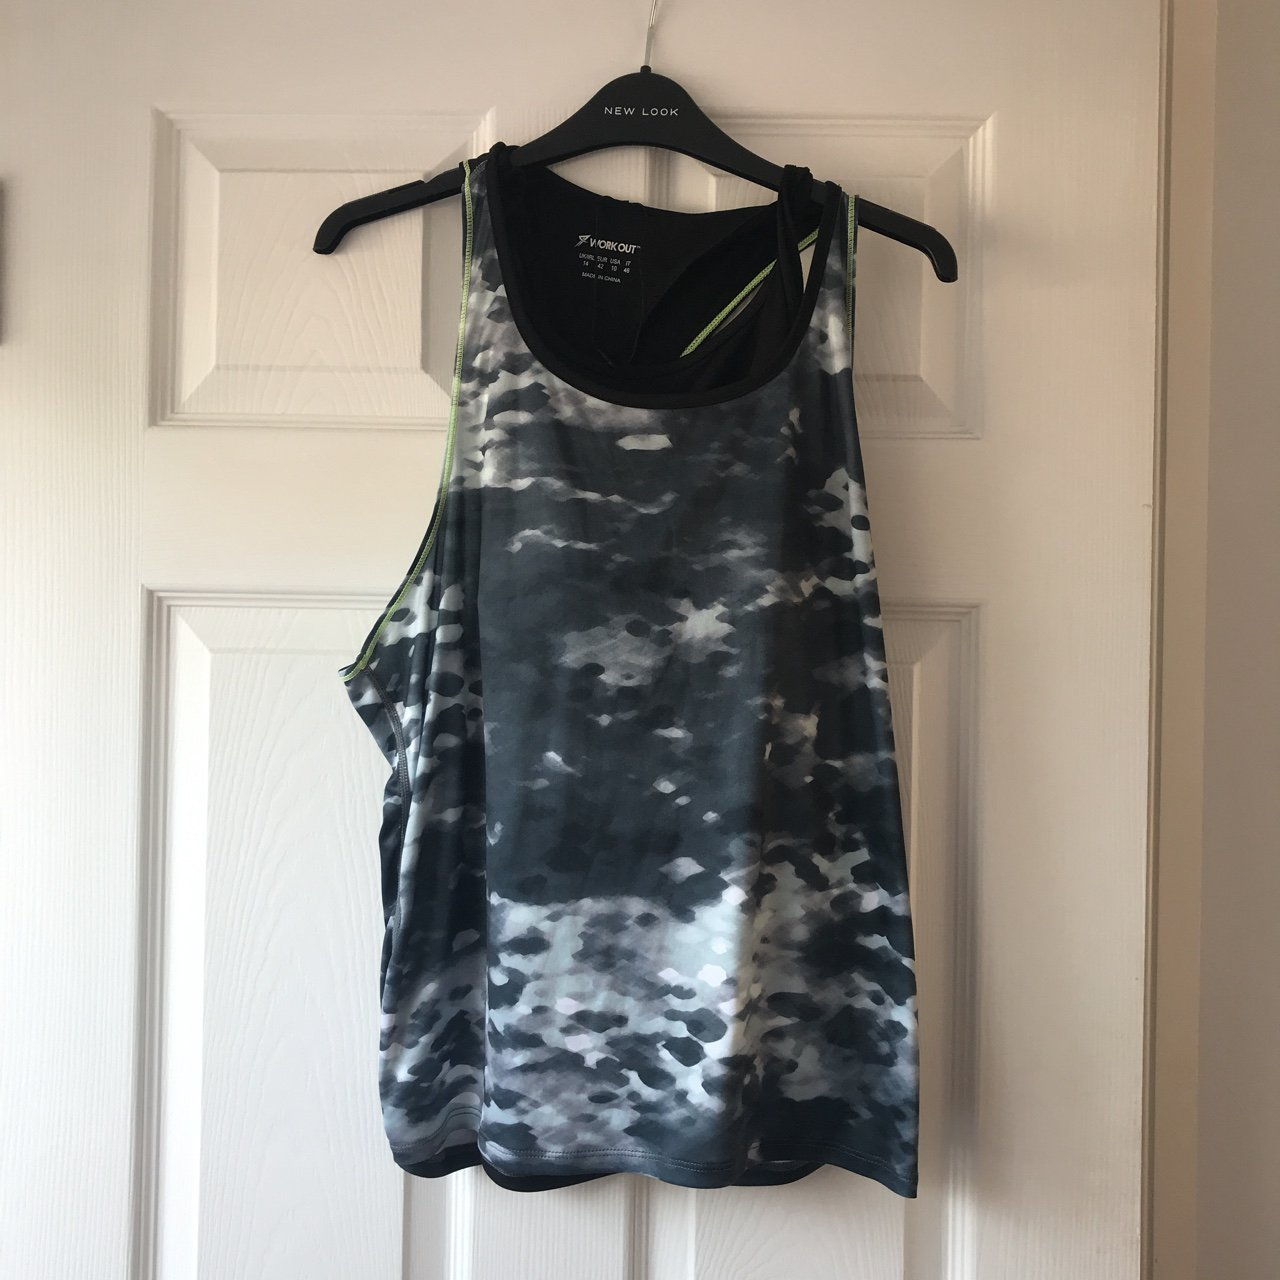 cb63105be7a81 Grey and green gym top brought from primark never worn has - Depop